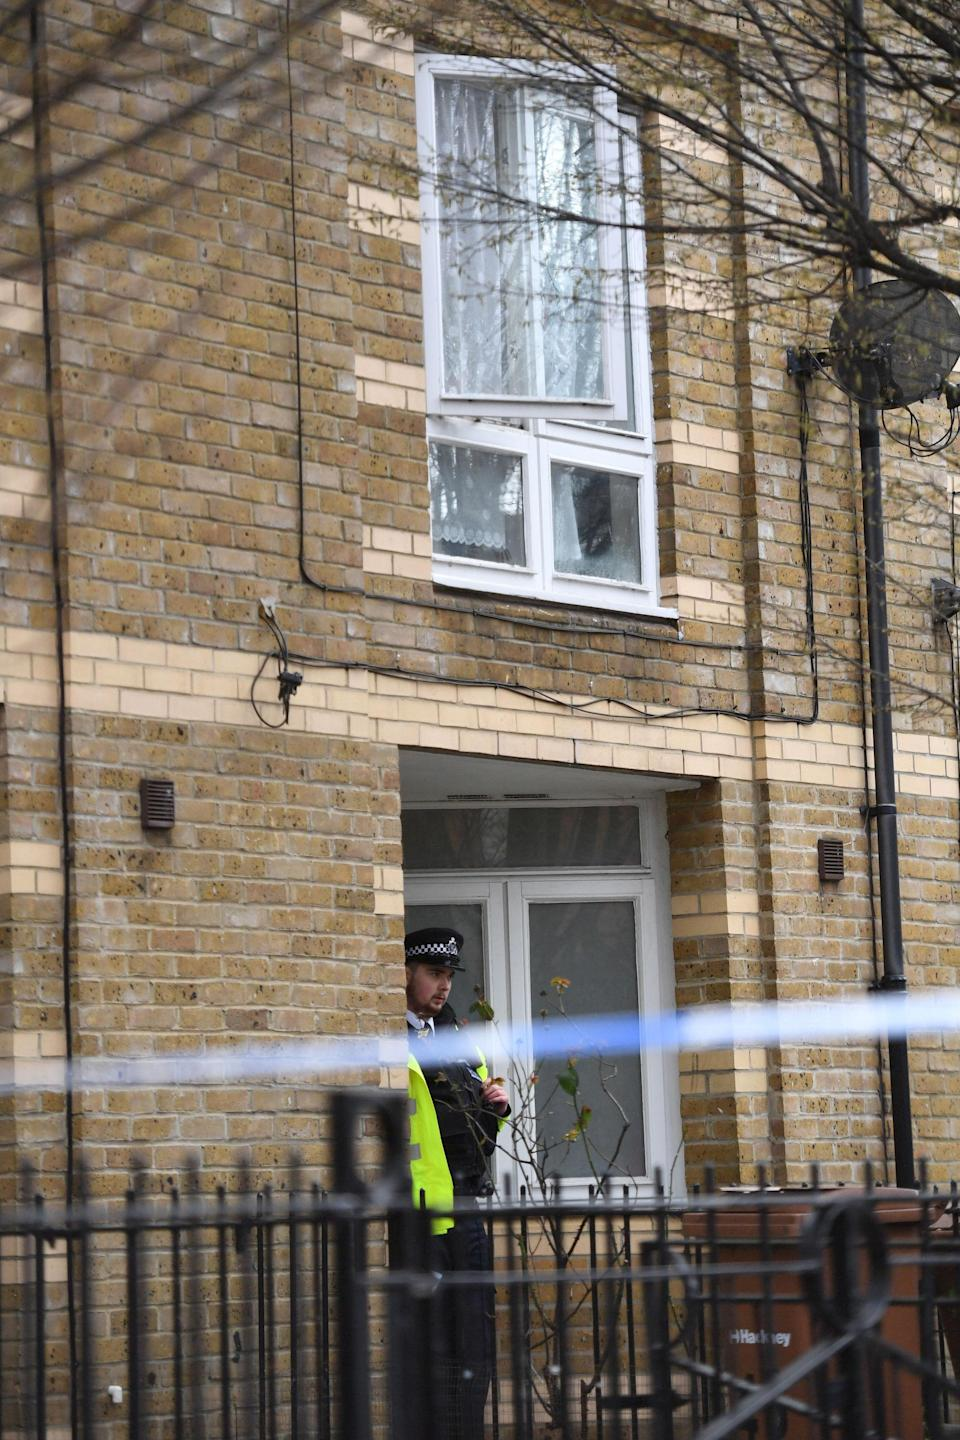 <em>Investigation – the police watchdog has launched a probe after armed officers fired at a 21year-old 13 times (Pictures: PA)</em>